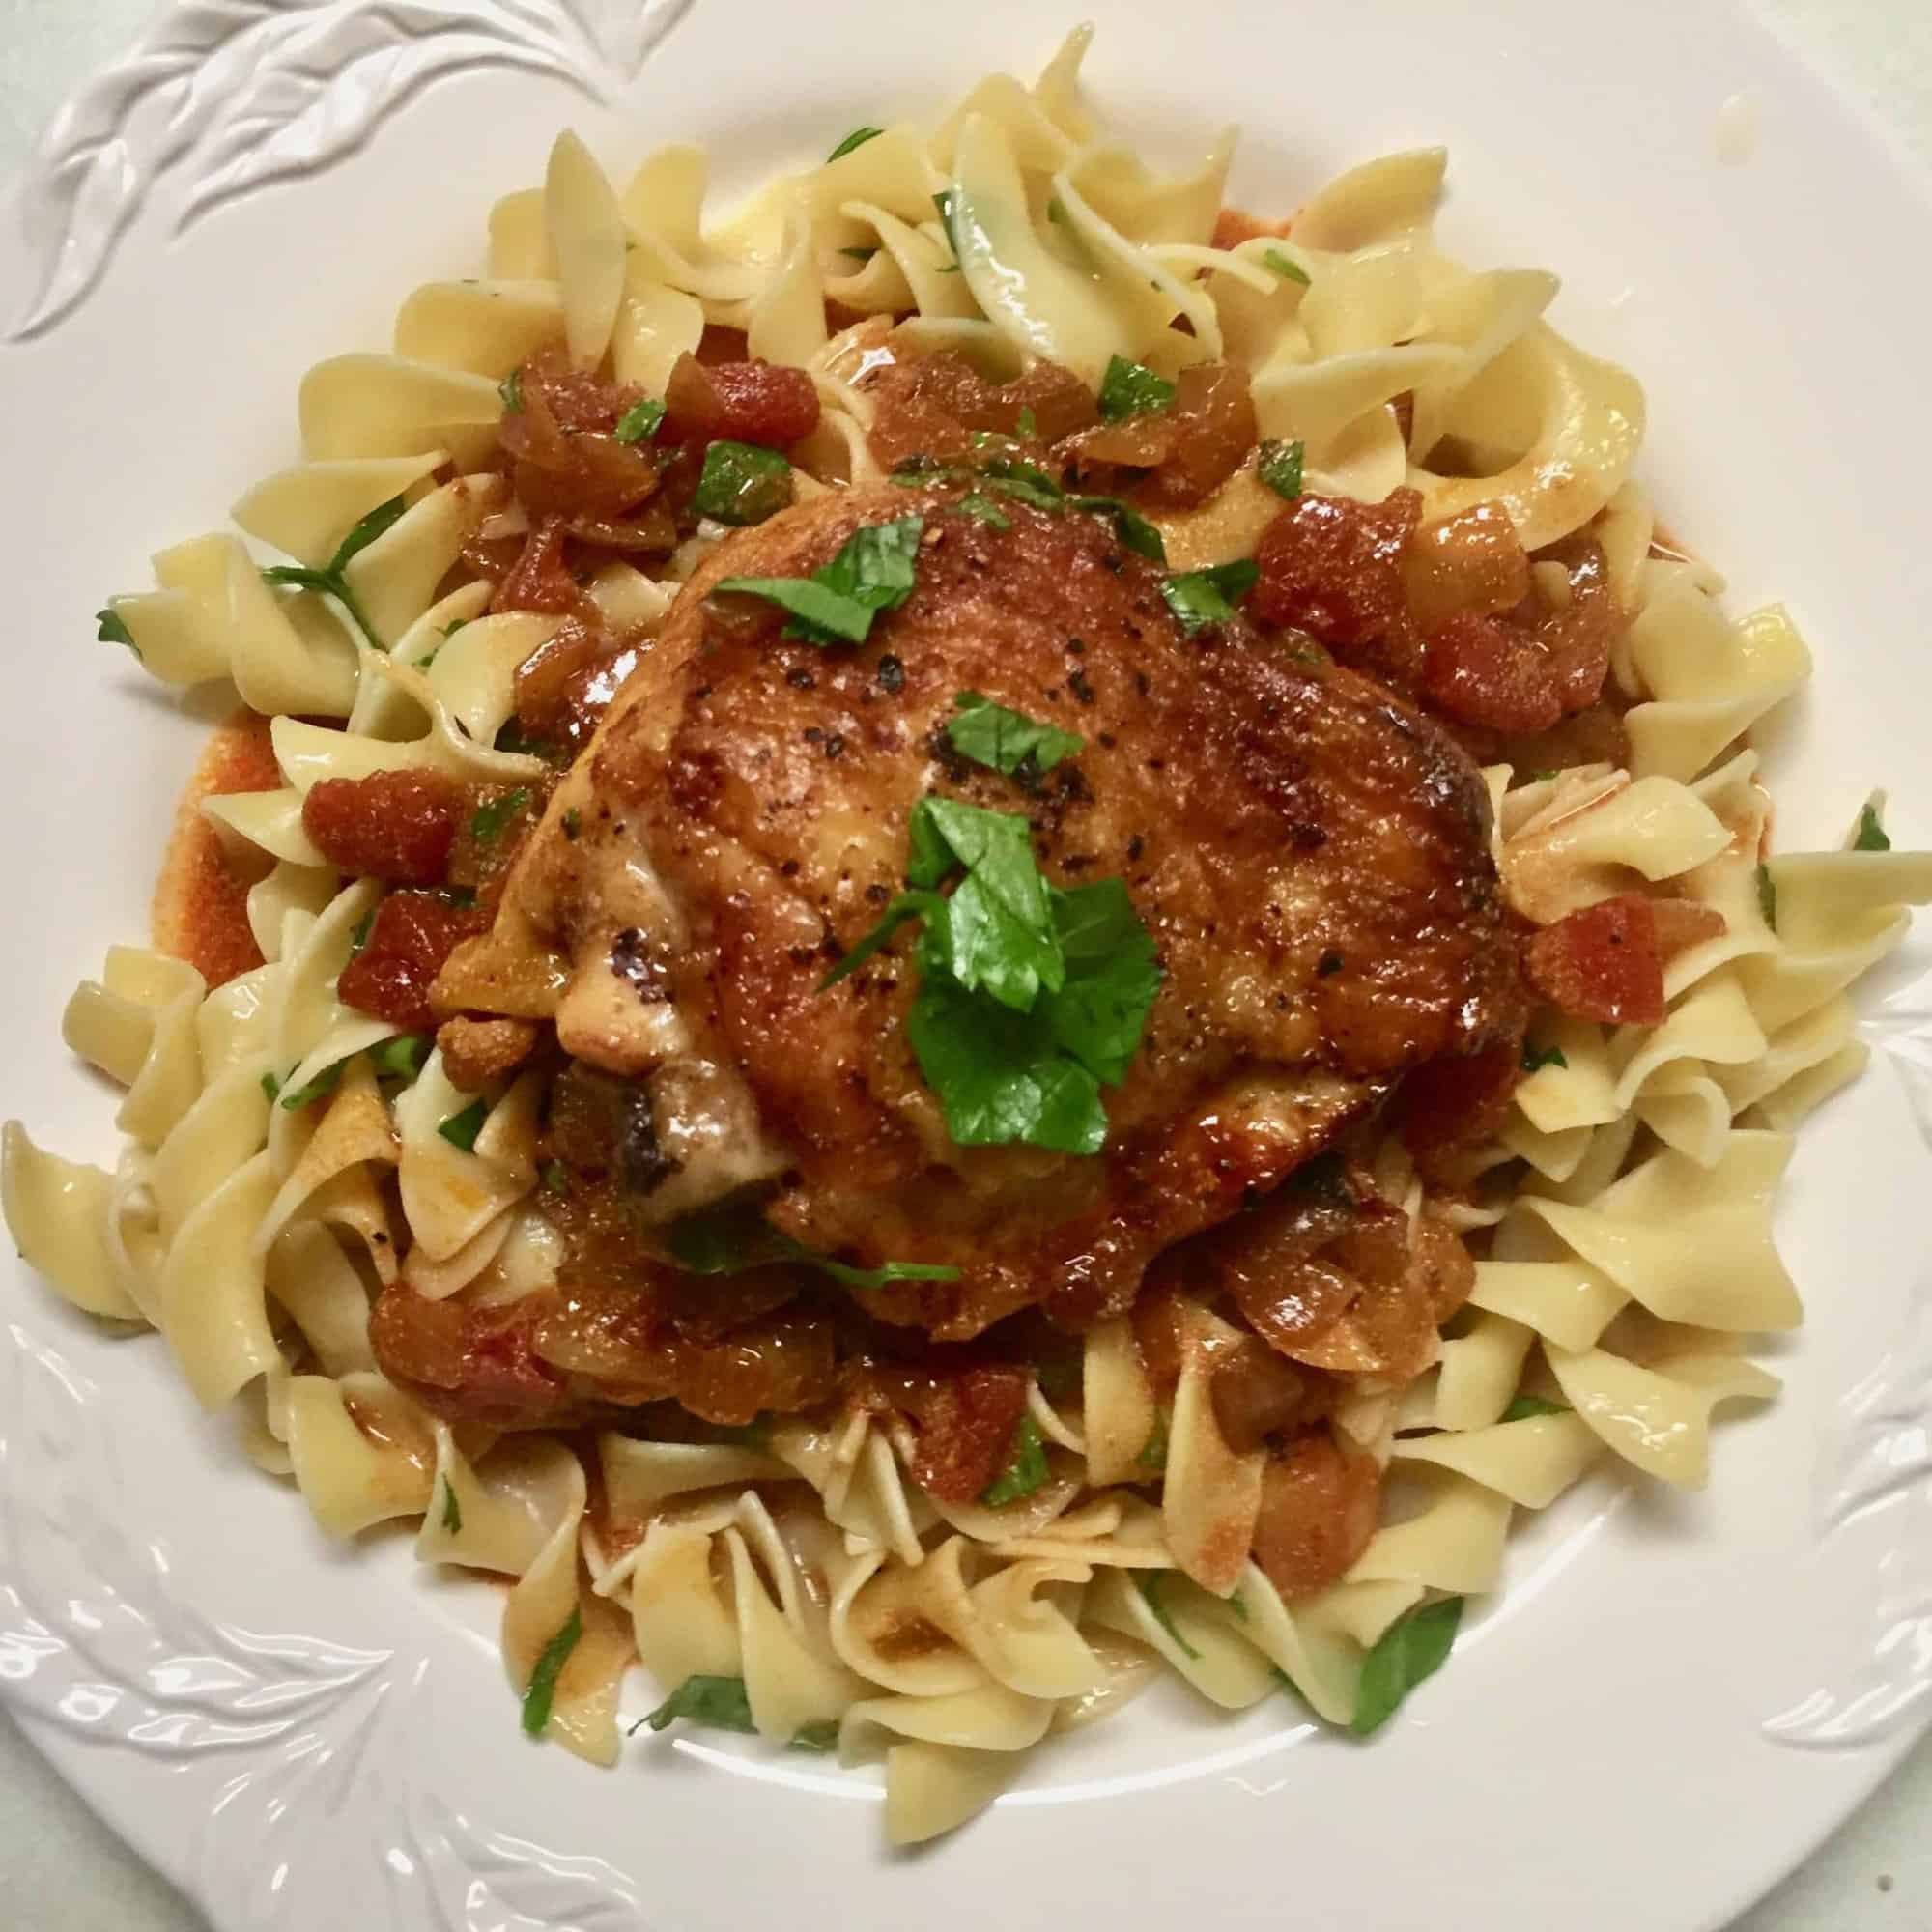 Claire Saffitz' Chicken Paprikash with Buttered Egg Noodles